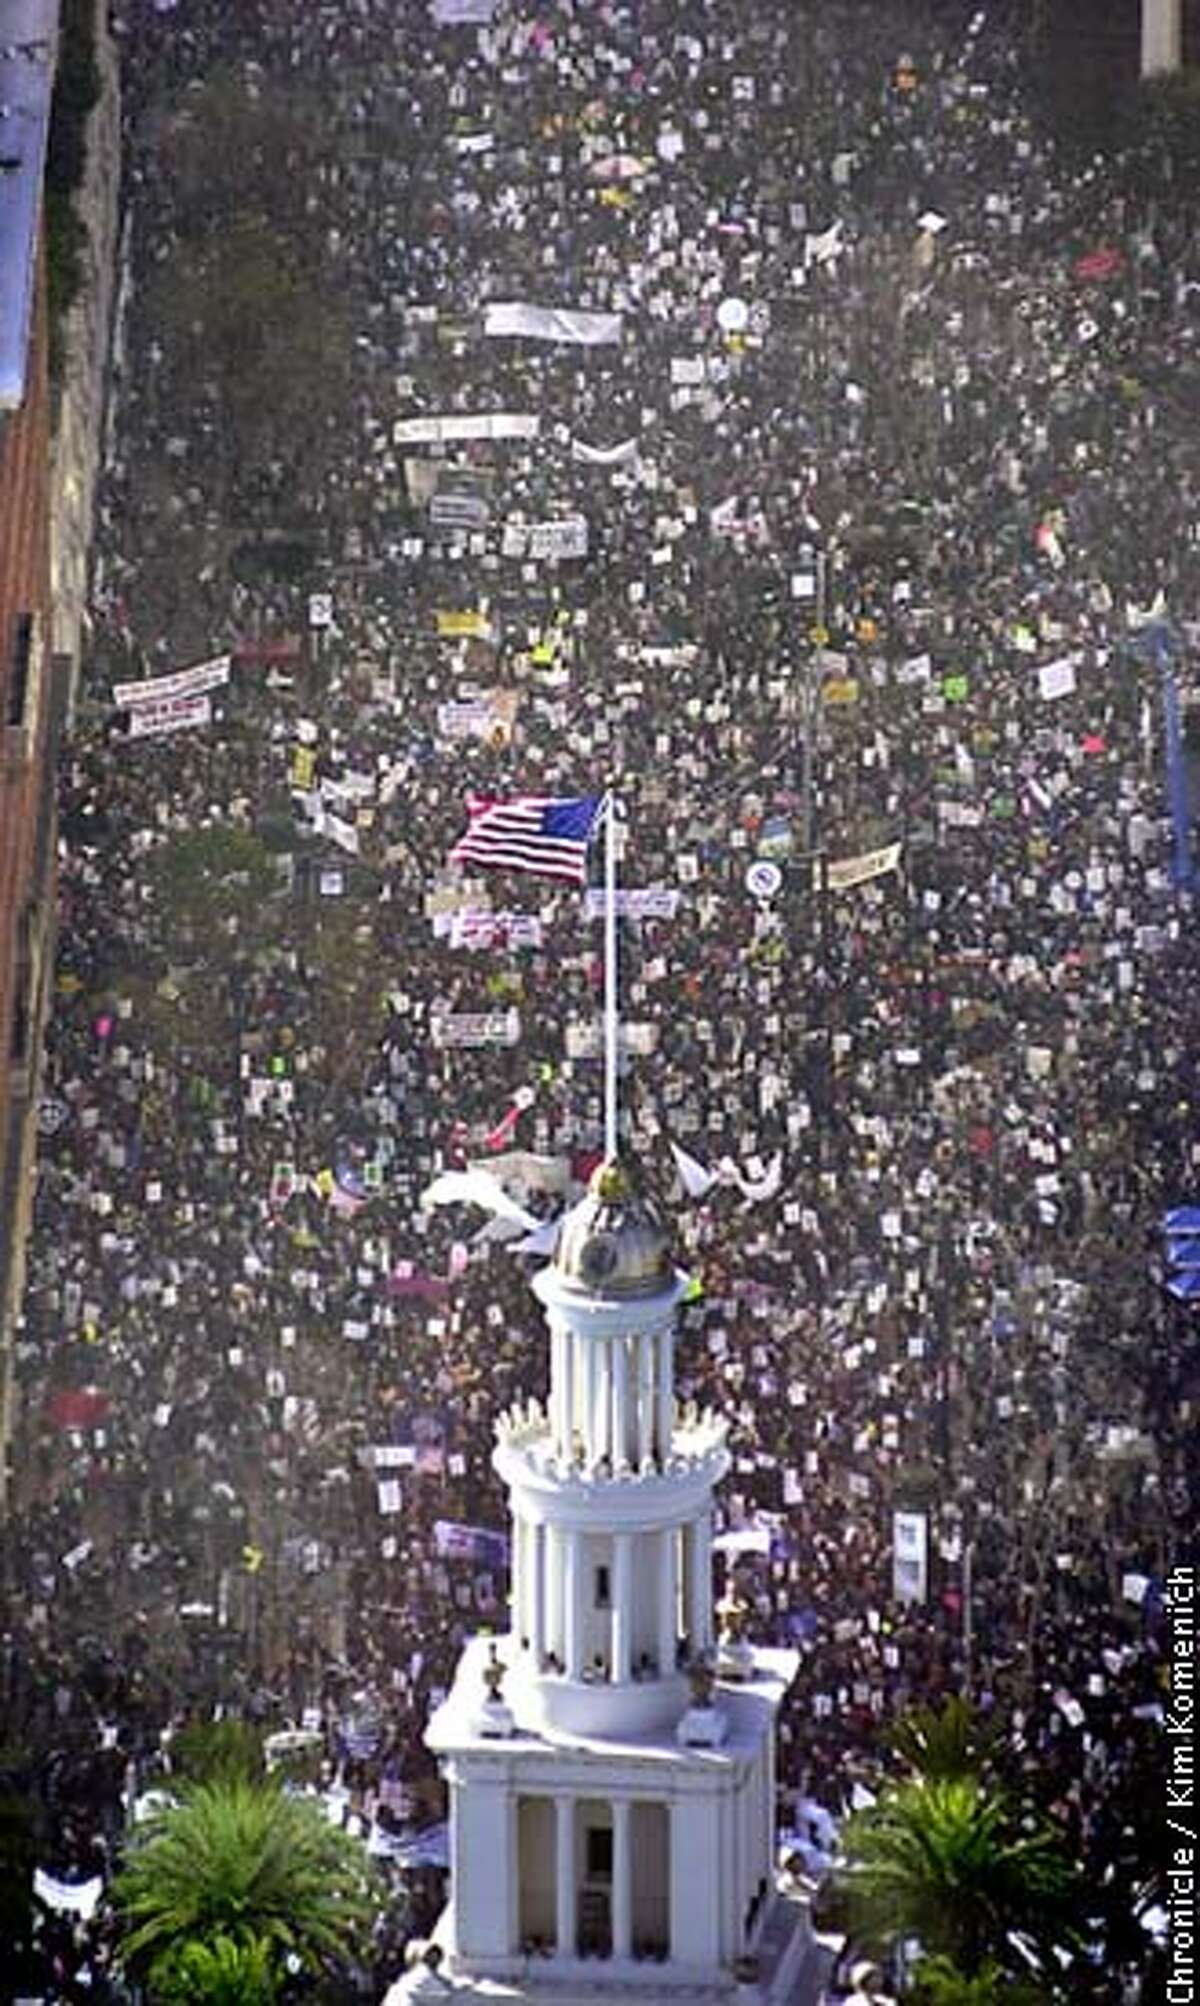 Aerial photos of tens of thousands of anti-war demonstrators as they march from Justin Herman Plaza to the S.F. Civic Center to protest the U.S. policy on Iraq (and a few other things). CHRONICLE PHOTO BY KIM KOMENICH